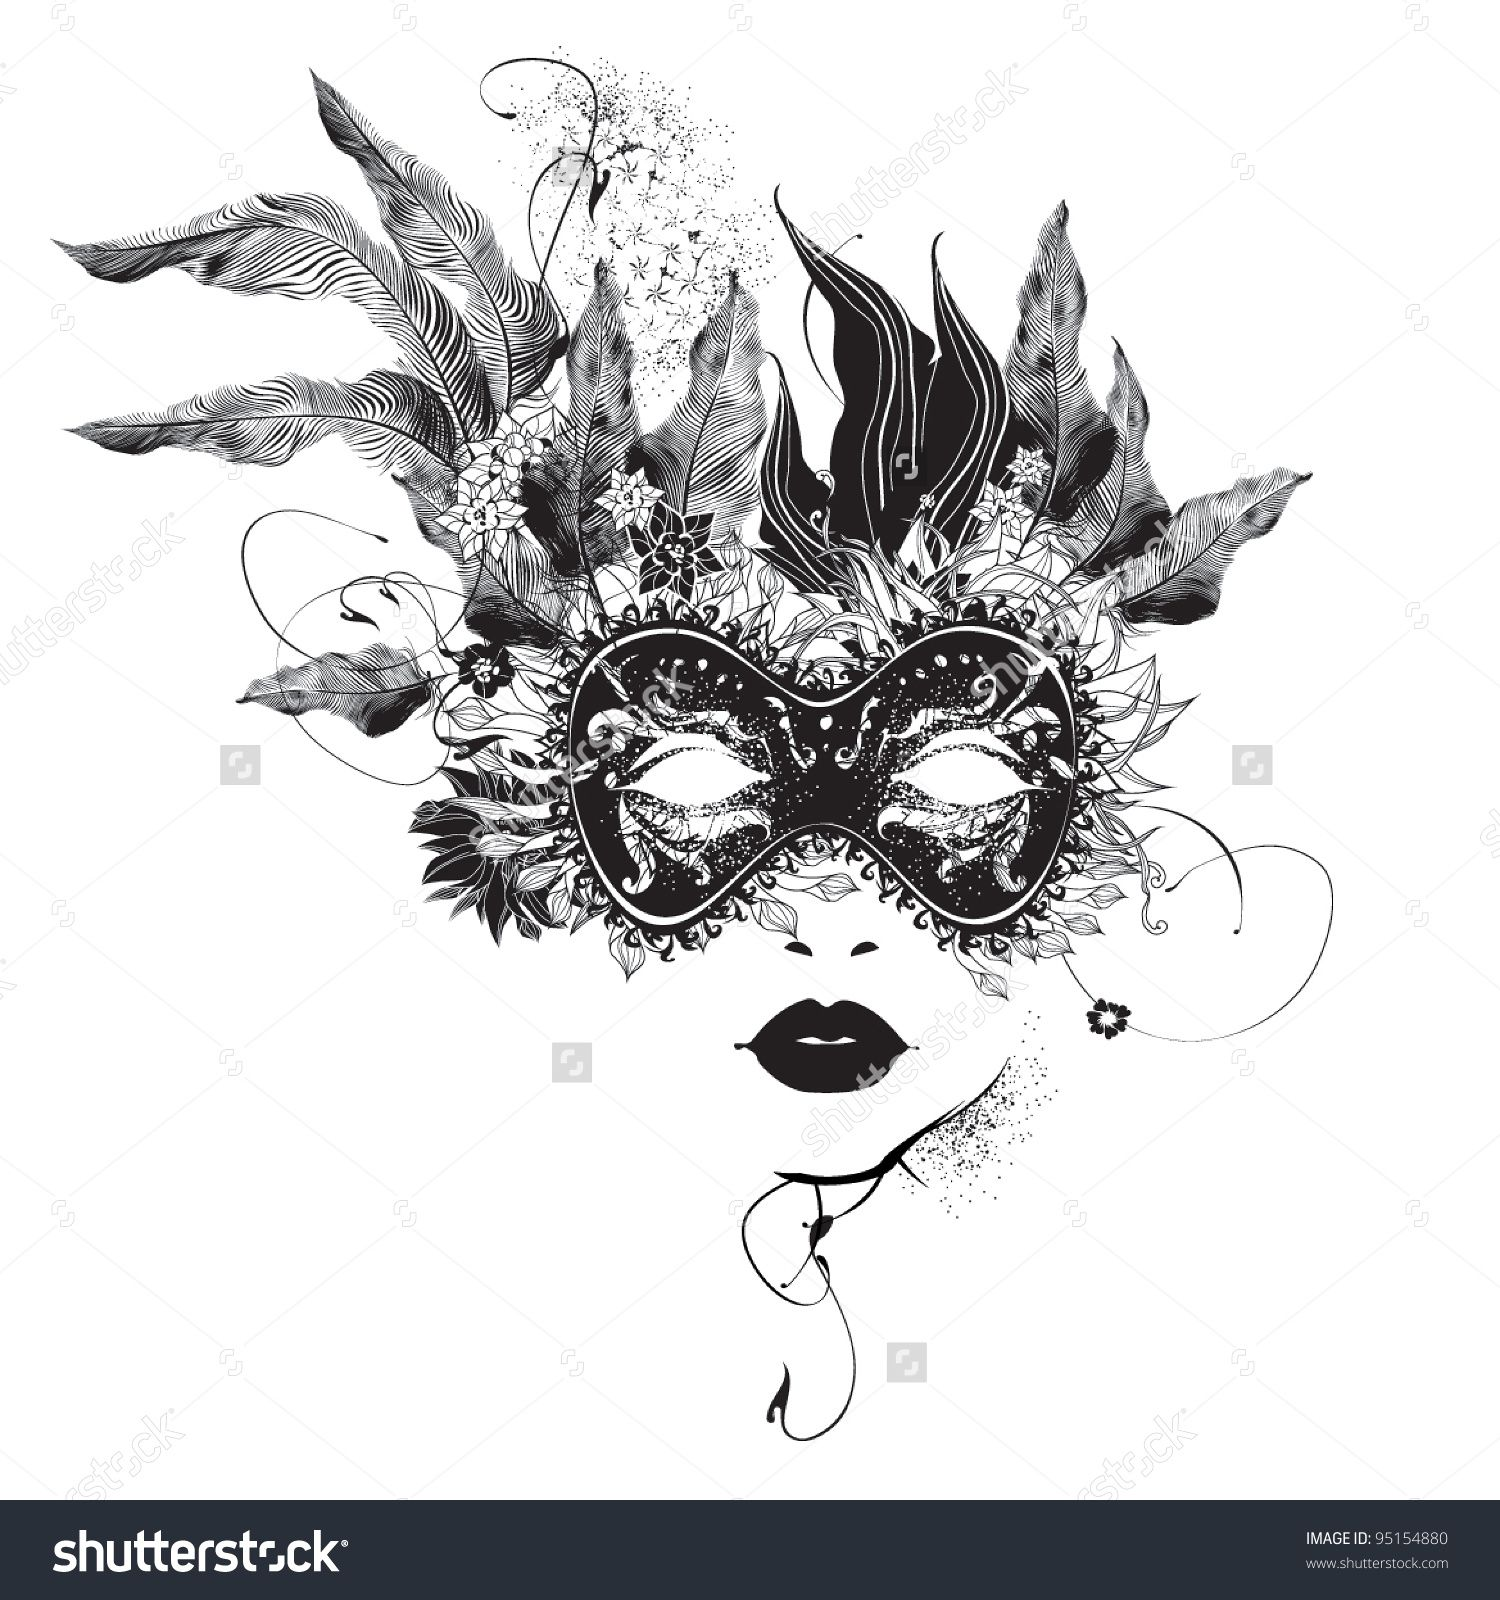 Summer beach scene vector stock vector colourbox - Image Vector Abstract Woman Mask With Flowers Black And White